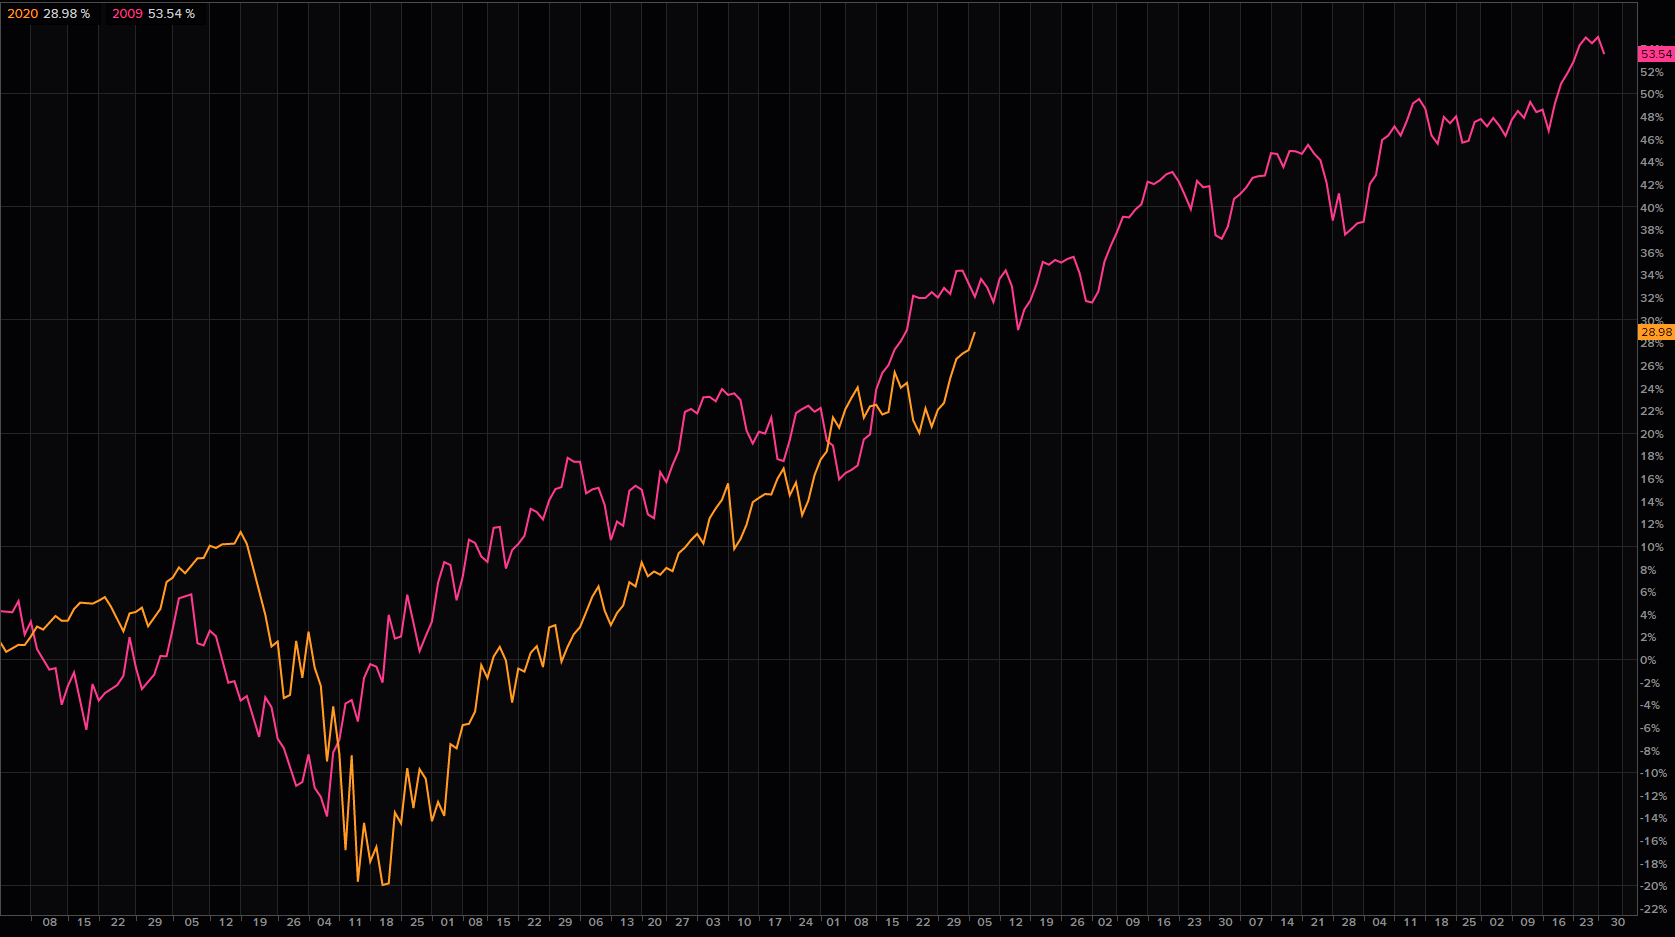 Still not a believer in the NASDAQ 2009 analogy?